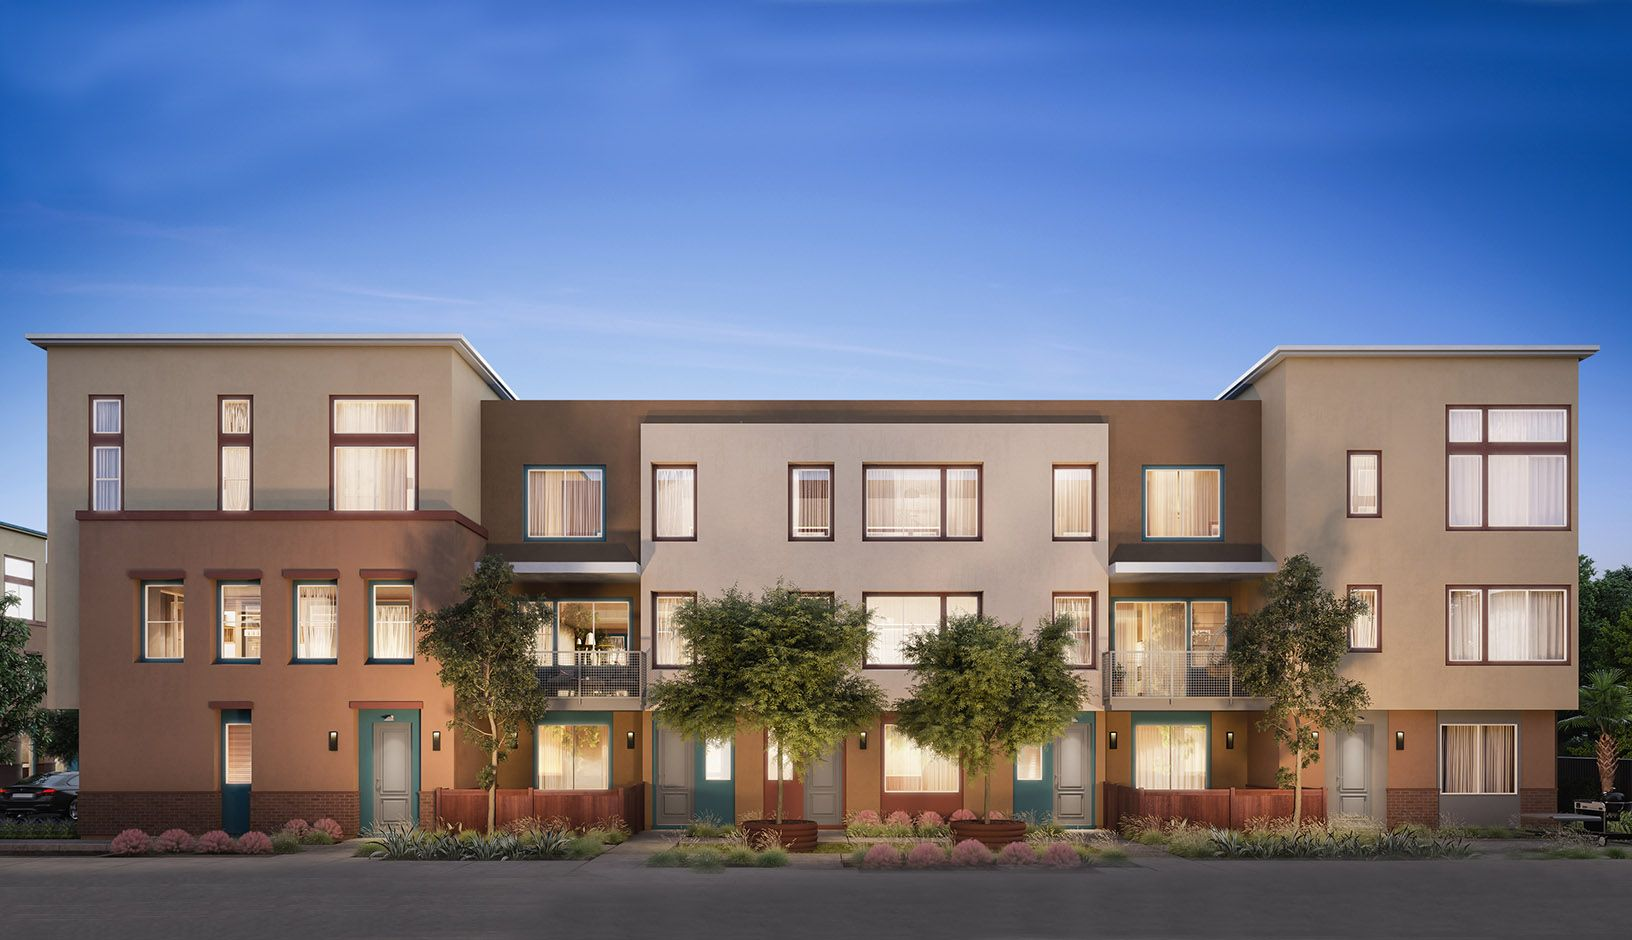 Townhomes and condos for sale in los angeles ca from for Houses for sale in los angeles area